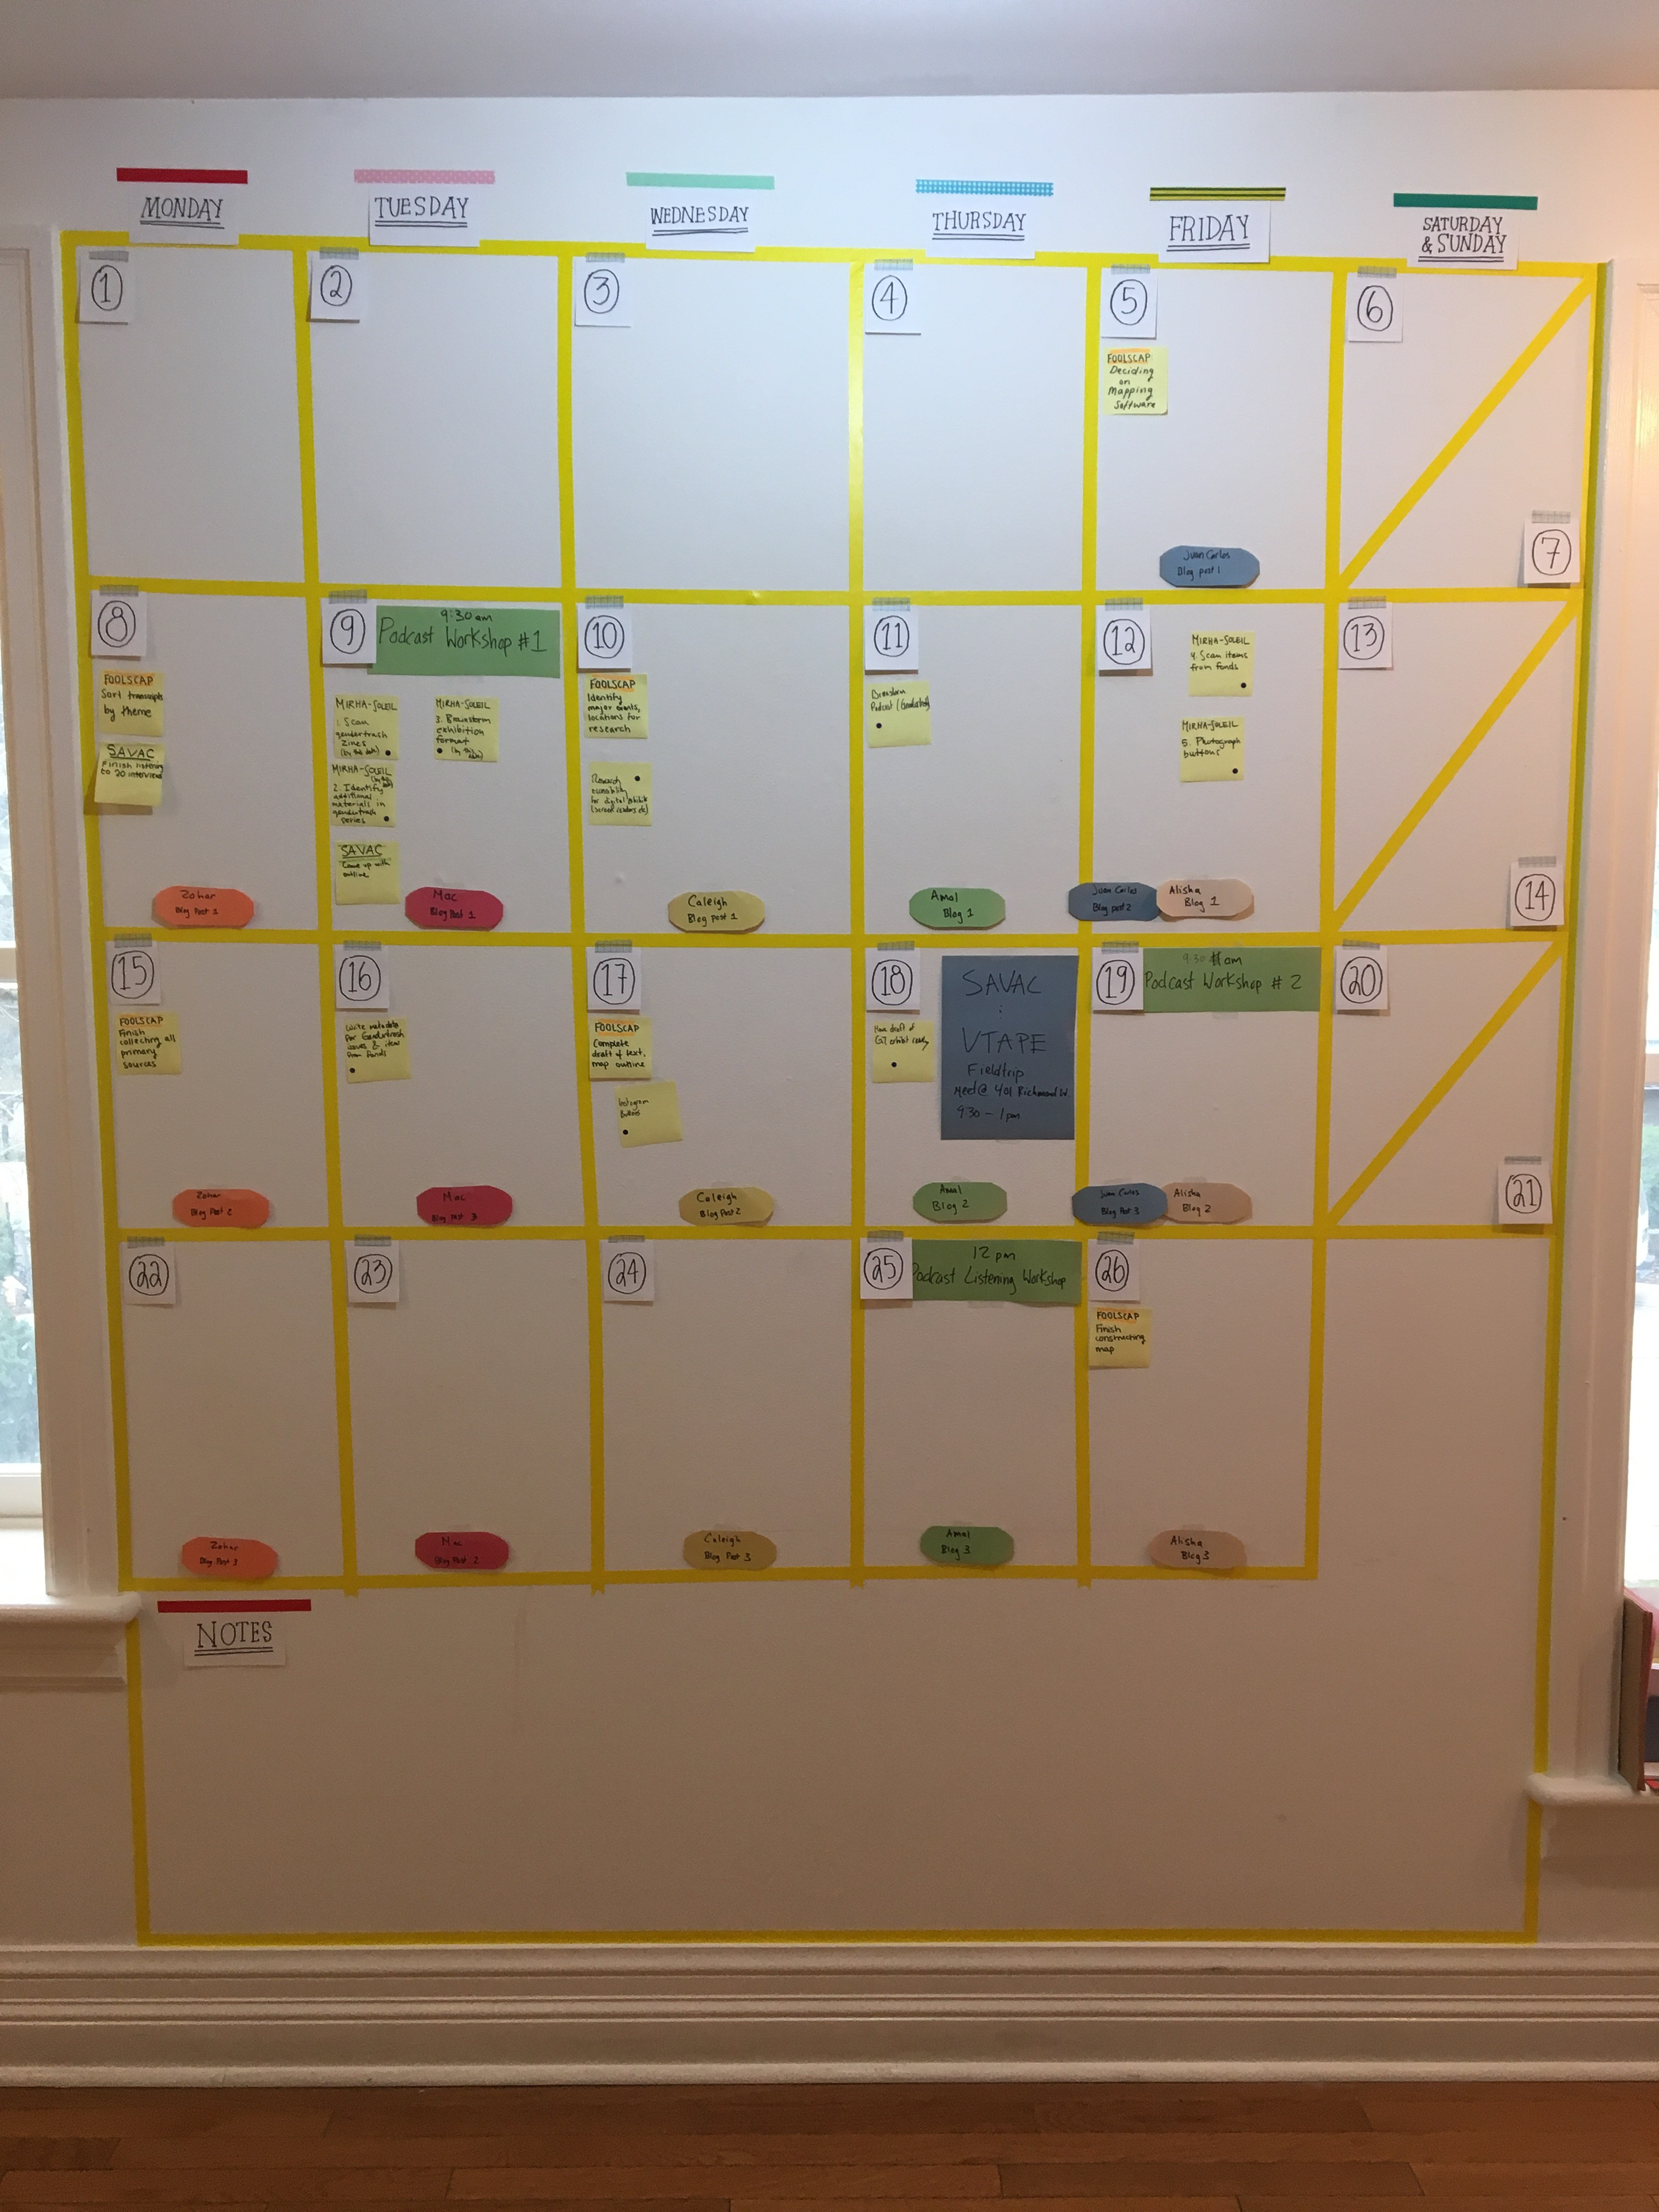 Photo of a large wall Calendar for Scholars in Residence Digital Collections Lab at Canadian Lesbian and Gay Archives. Made of yellow tape against a white wall and filled in using post-it notes and other stick-on papers.